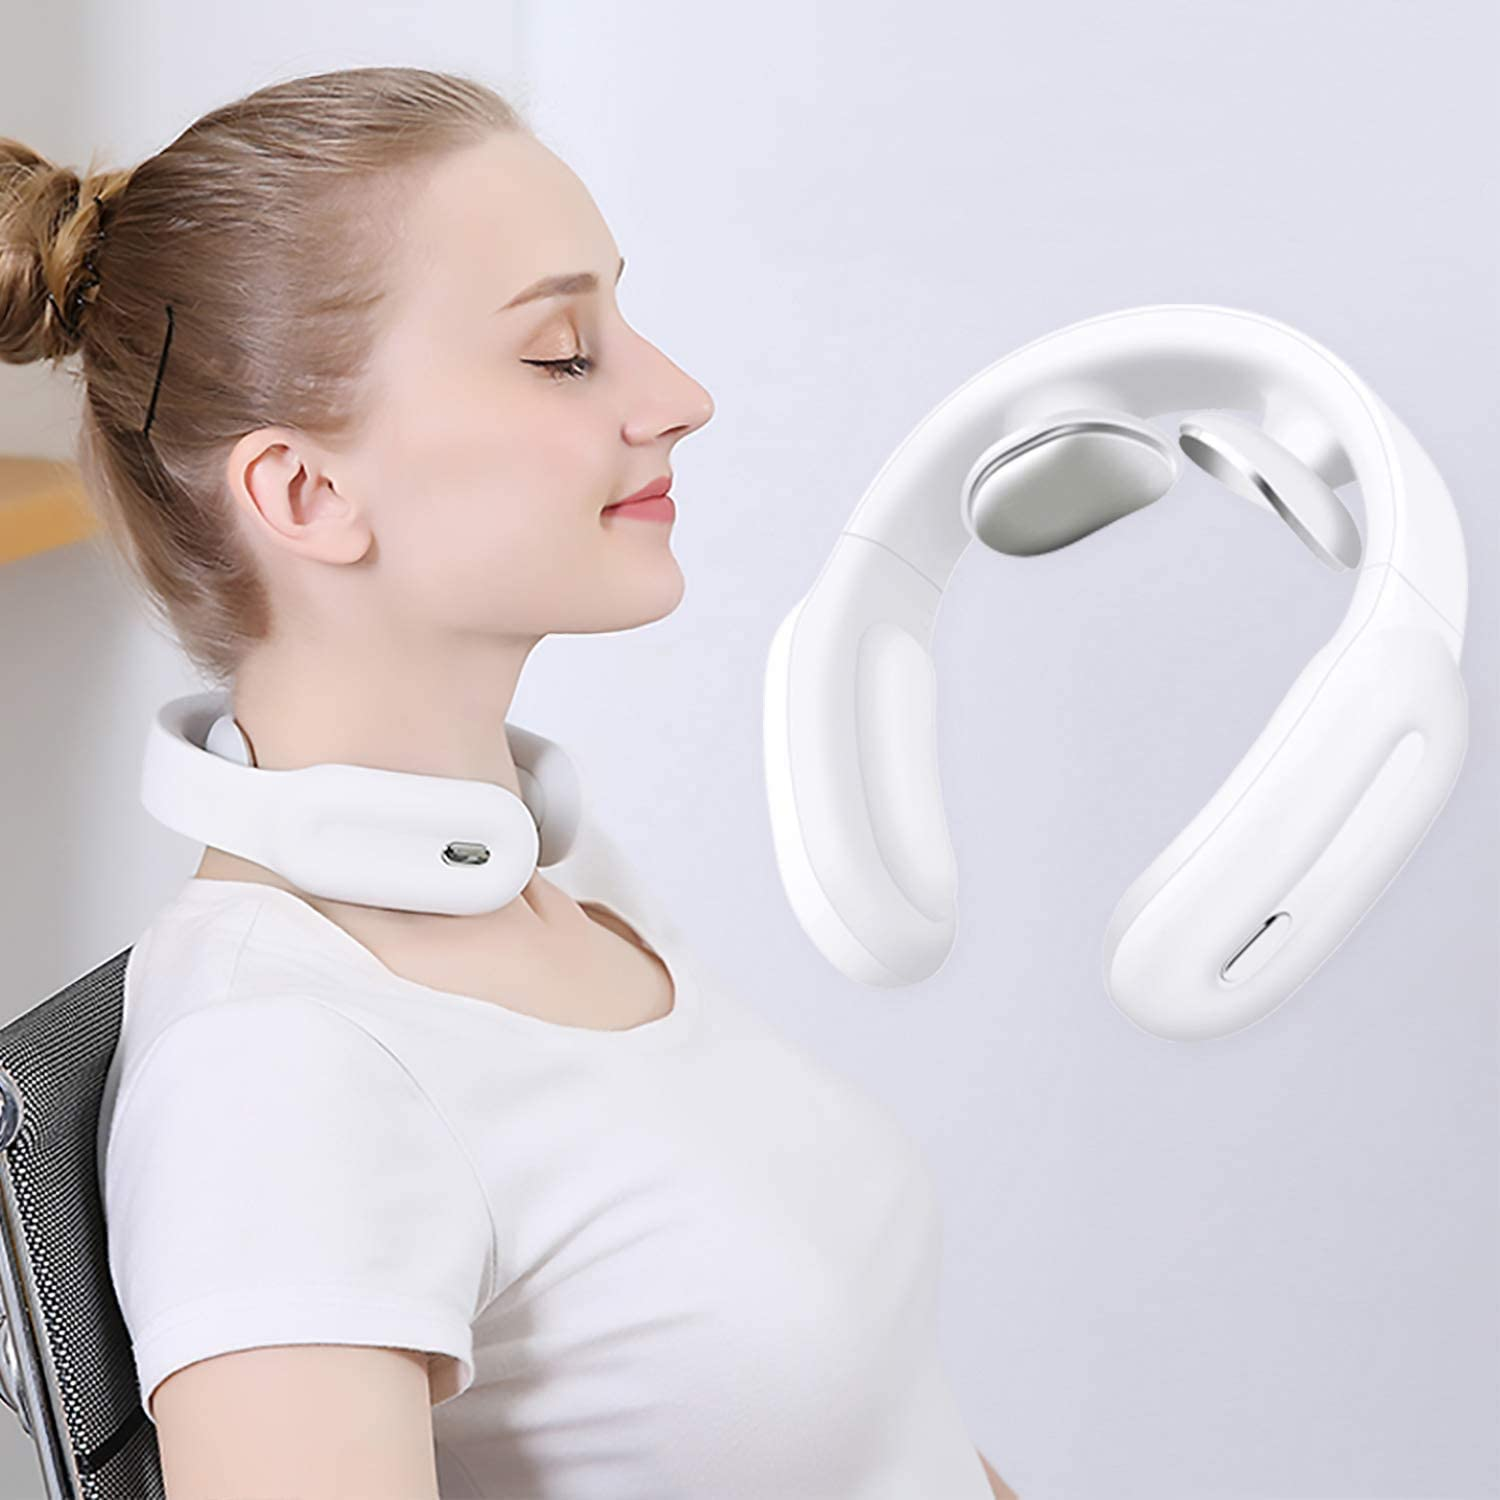 Amazon.com: Neck Massager,Intelligent Wireless Portable 4D Neck Massage  Equipment,Deep Tissue Massage Trigger Point for Office, Home, Sport,Travel.  Feeke X7-pro: Health & Personal Care